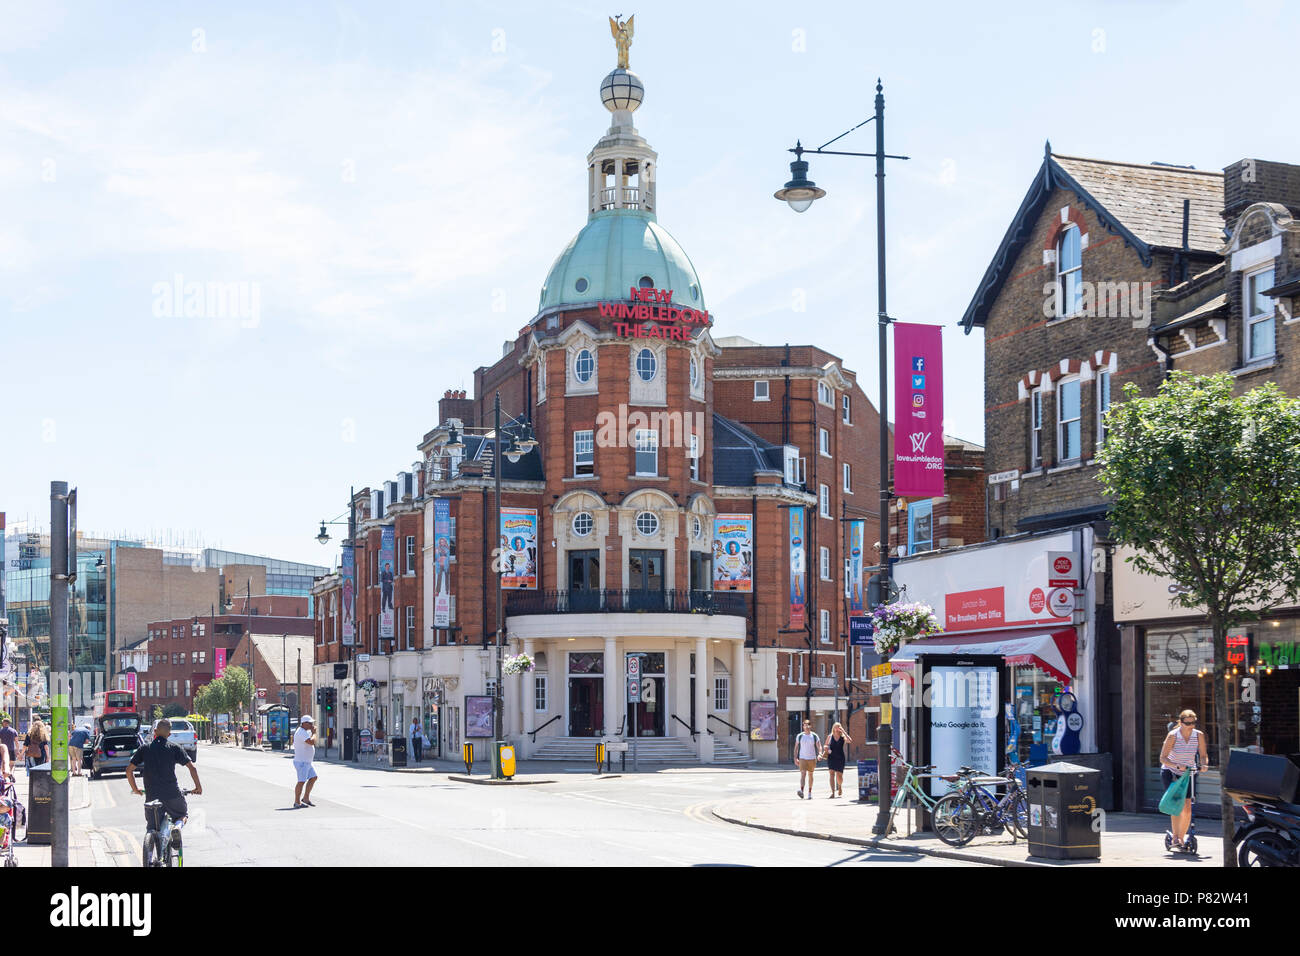 New Wimbledon Theatre, The Broadway, Wimbledon, London Borough of Merton, Greater London, England, United Kingdom - Stock Image